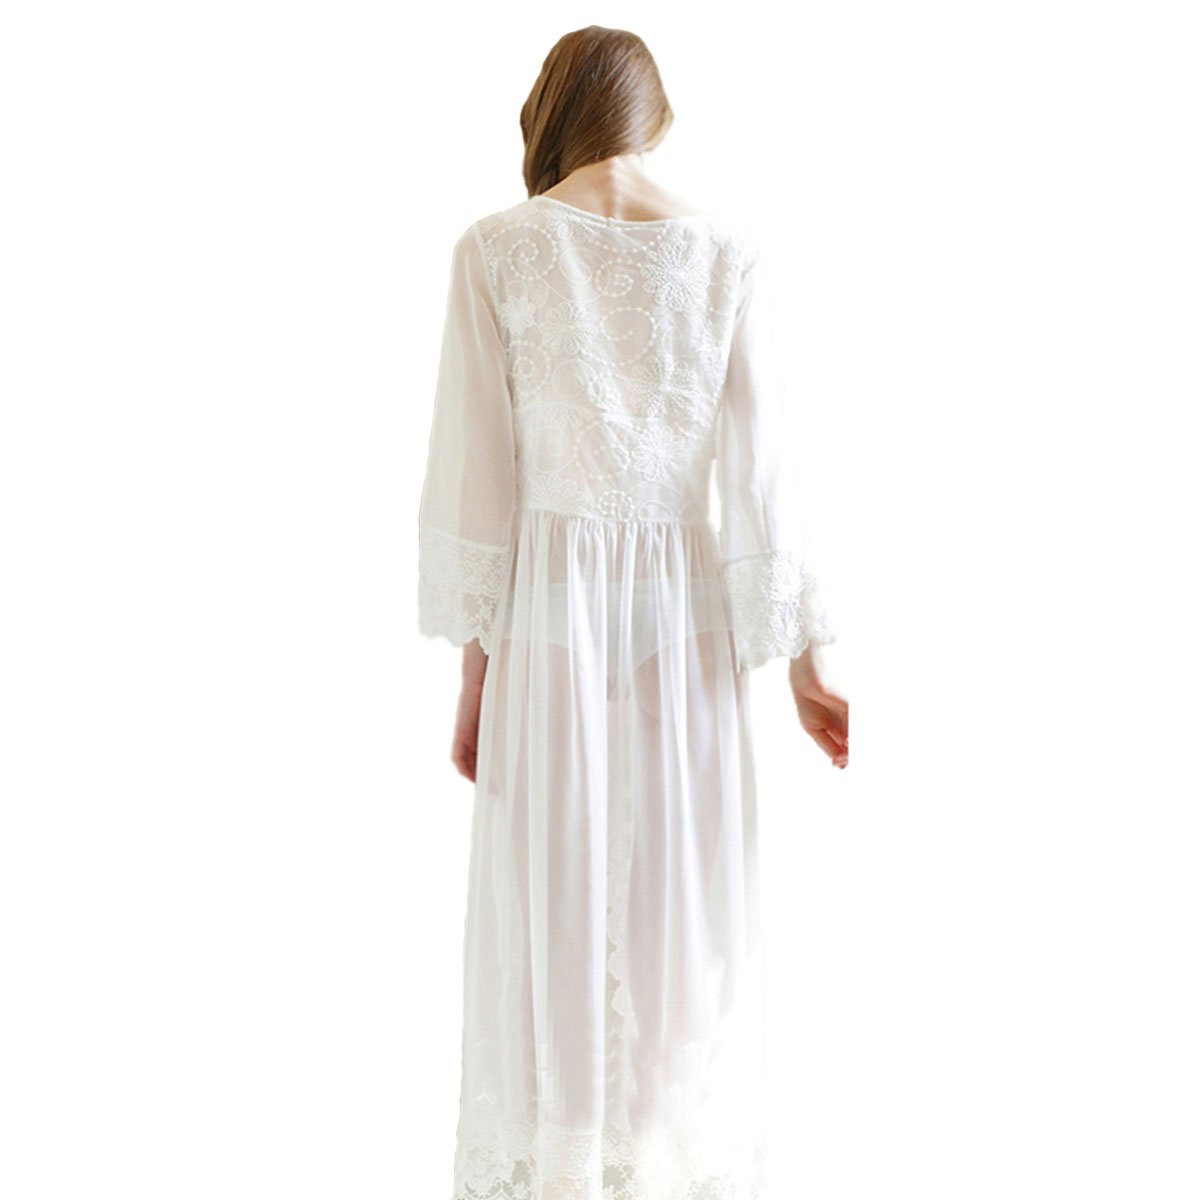 Cityelf Women's Sexy Clear Chiffon Vintage Maxi Pretty Lace Sleepwear SYW0002 1